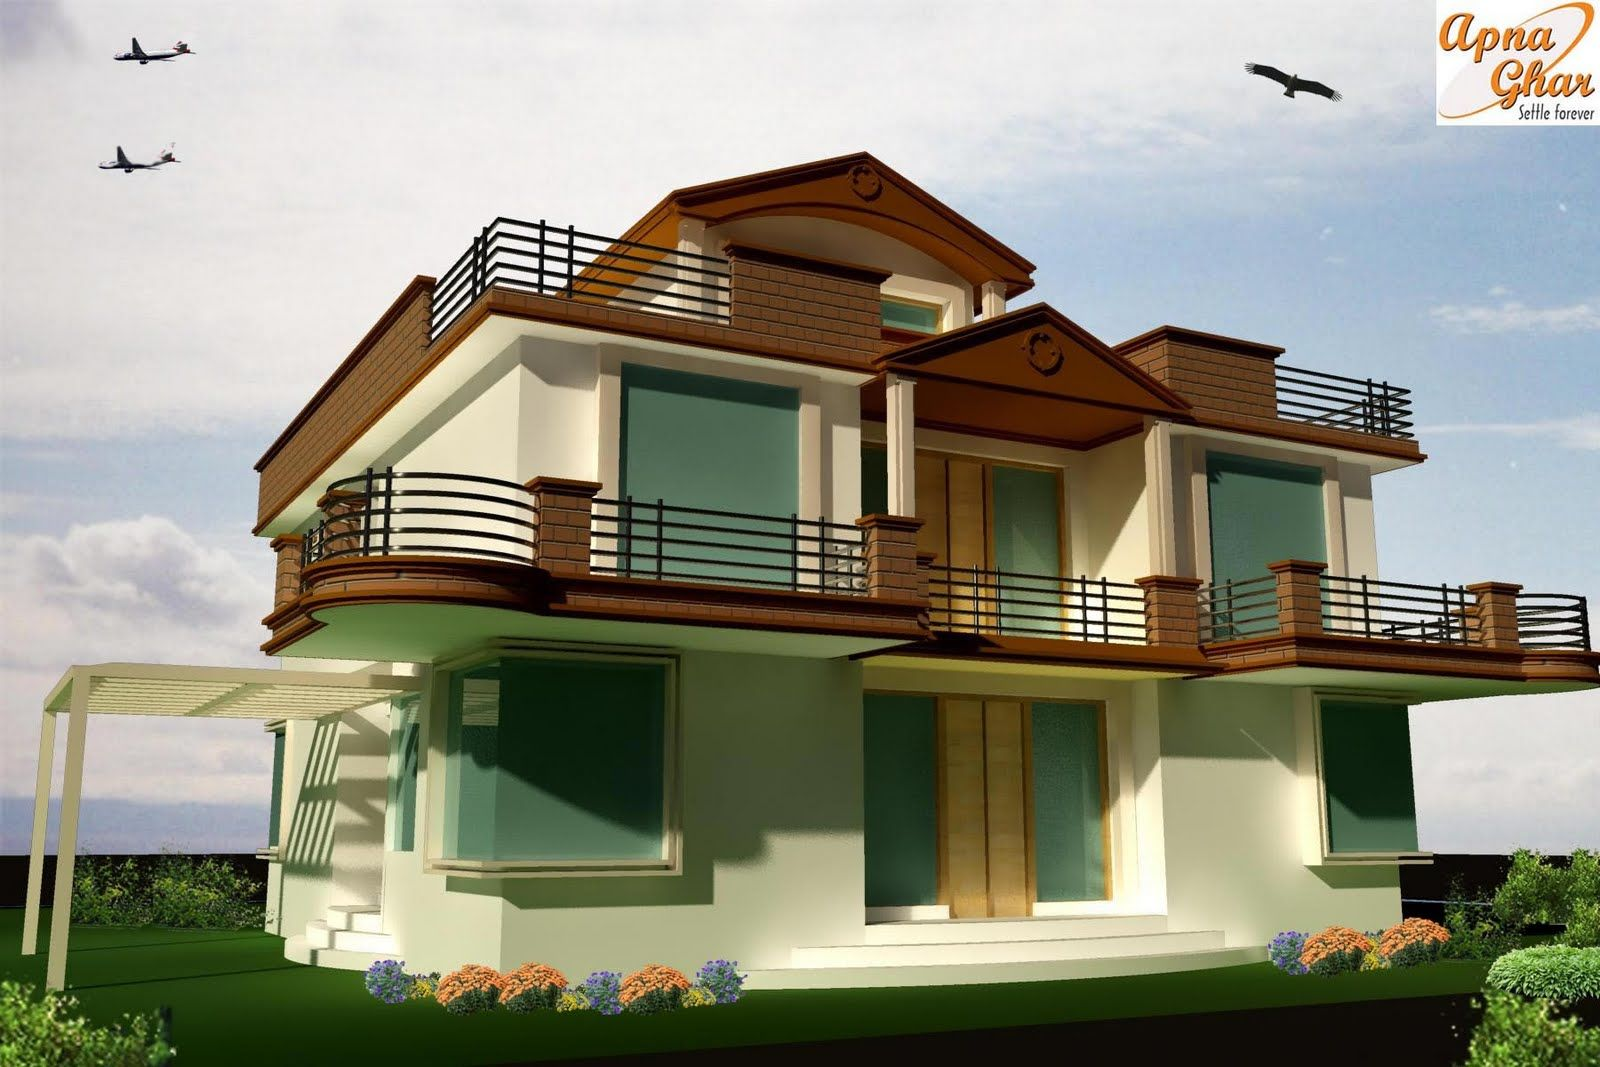 Architectural designs modern architectural house plans Modern home design ideas